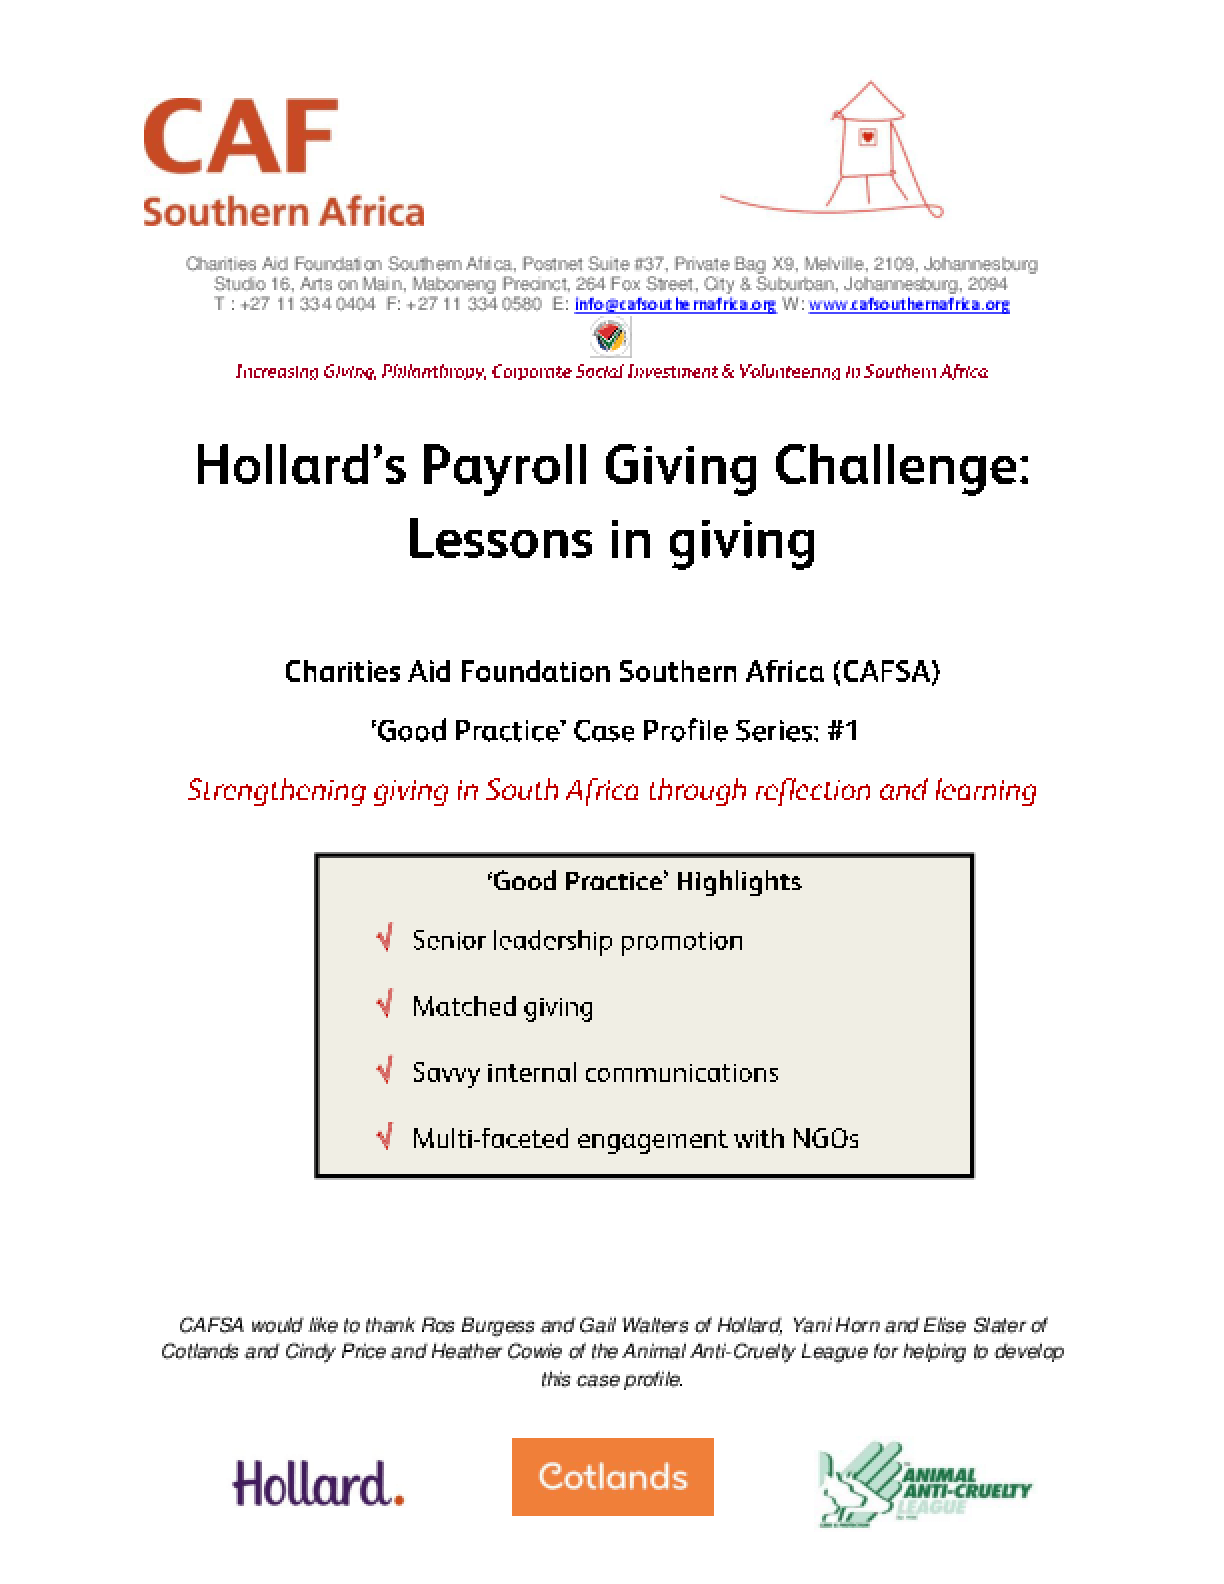 Hollard's Payroll Giving Challenge: Lessons in giving